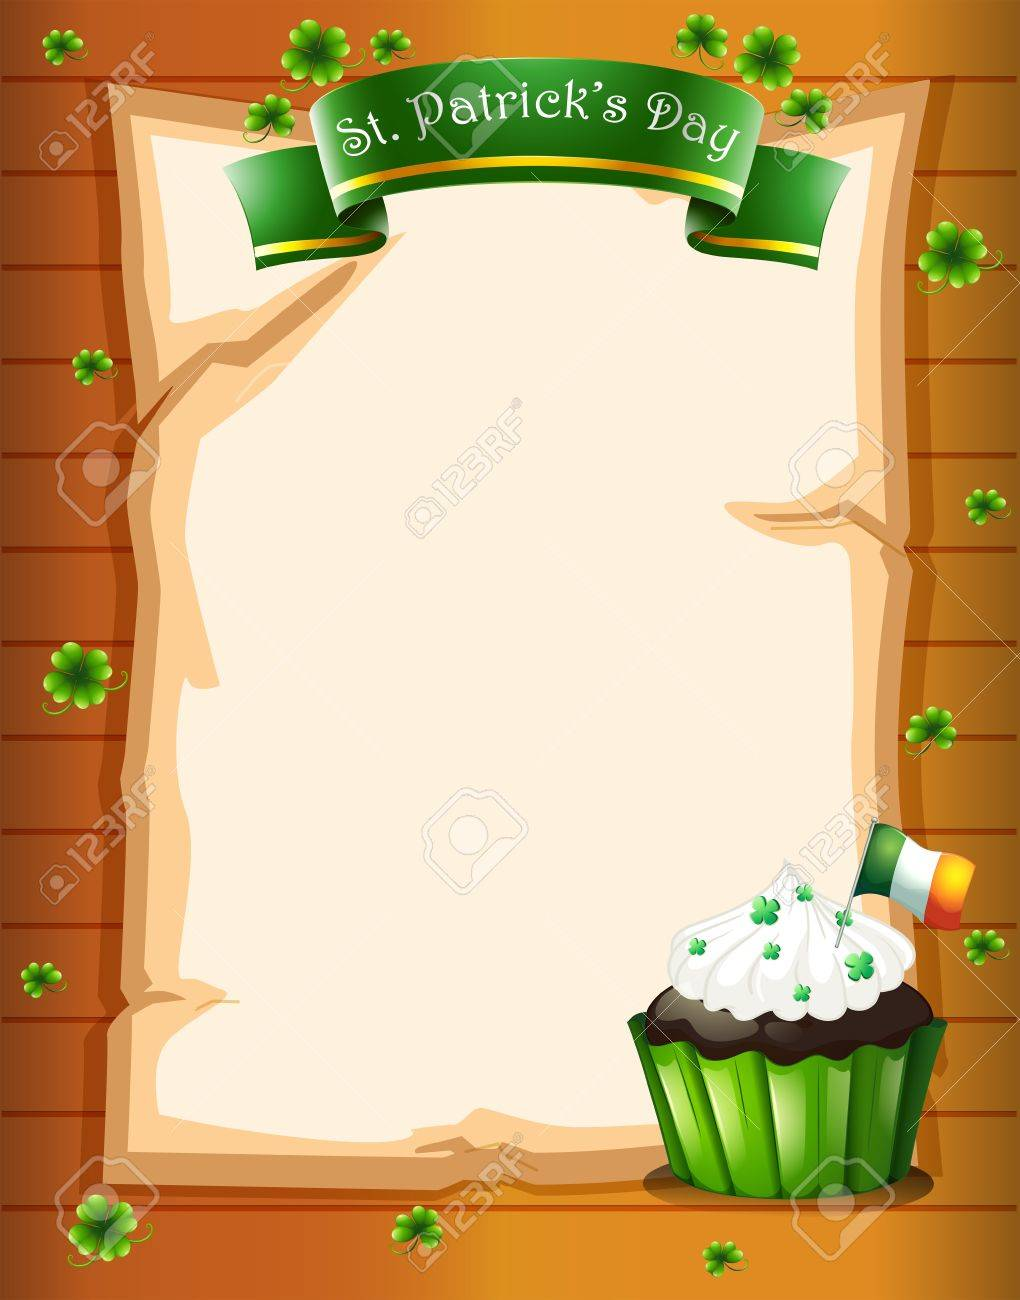 Illustration of a St. Patrick's day stationery Stock Vector - 18825221